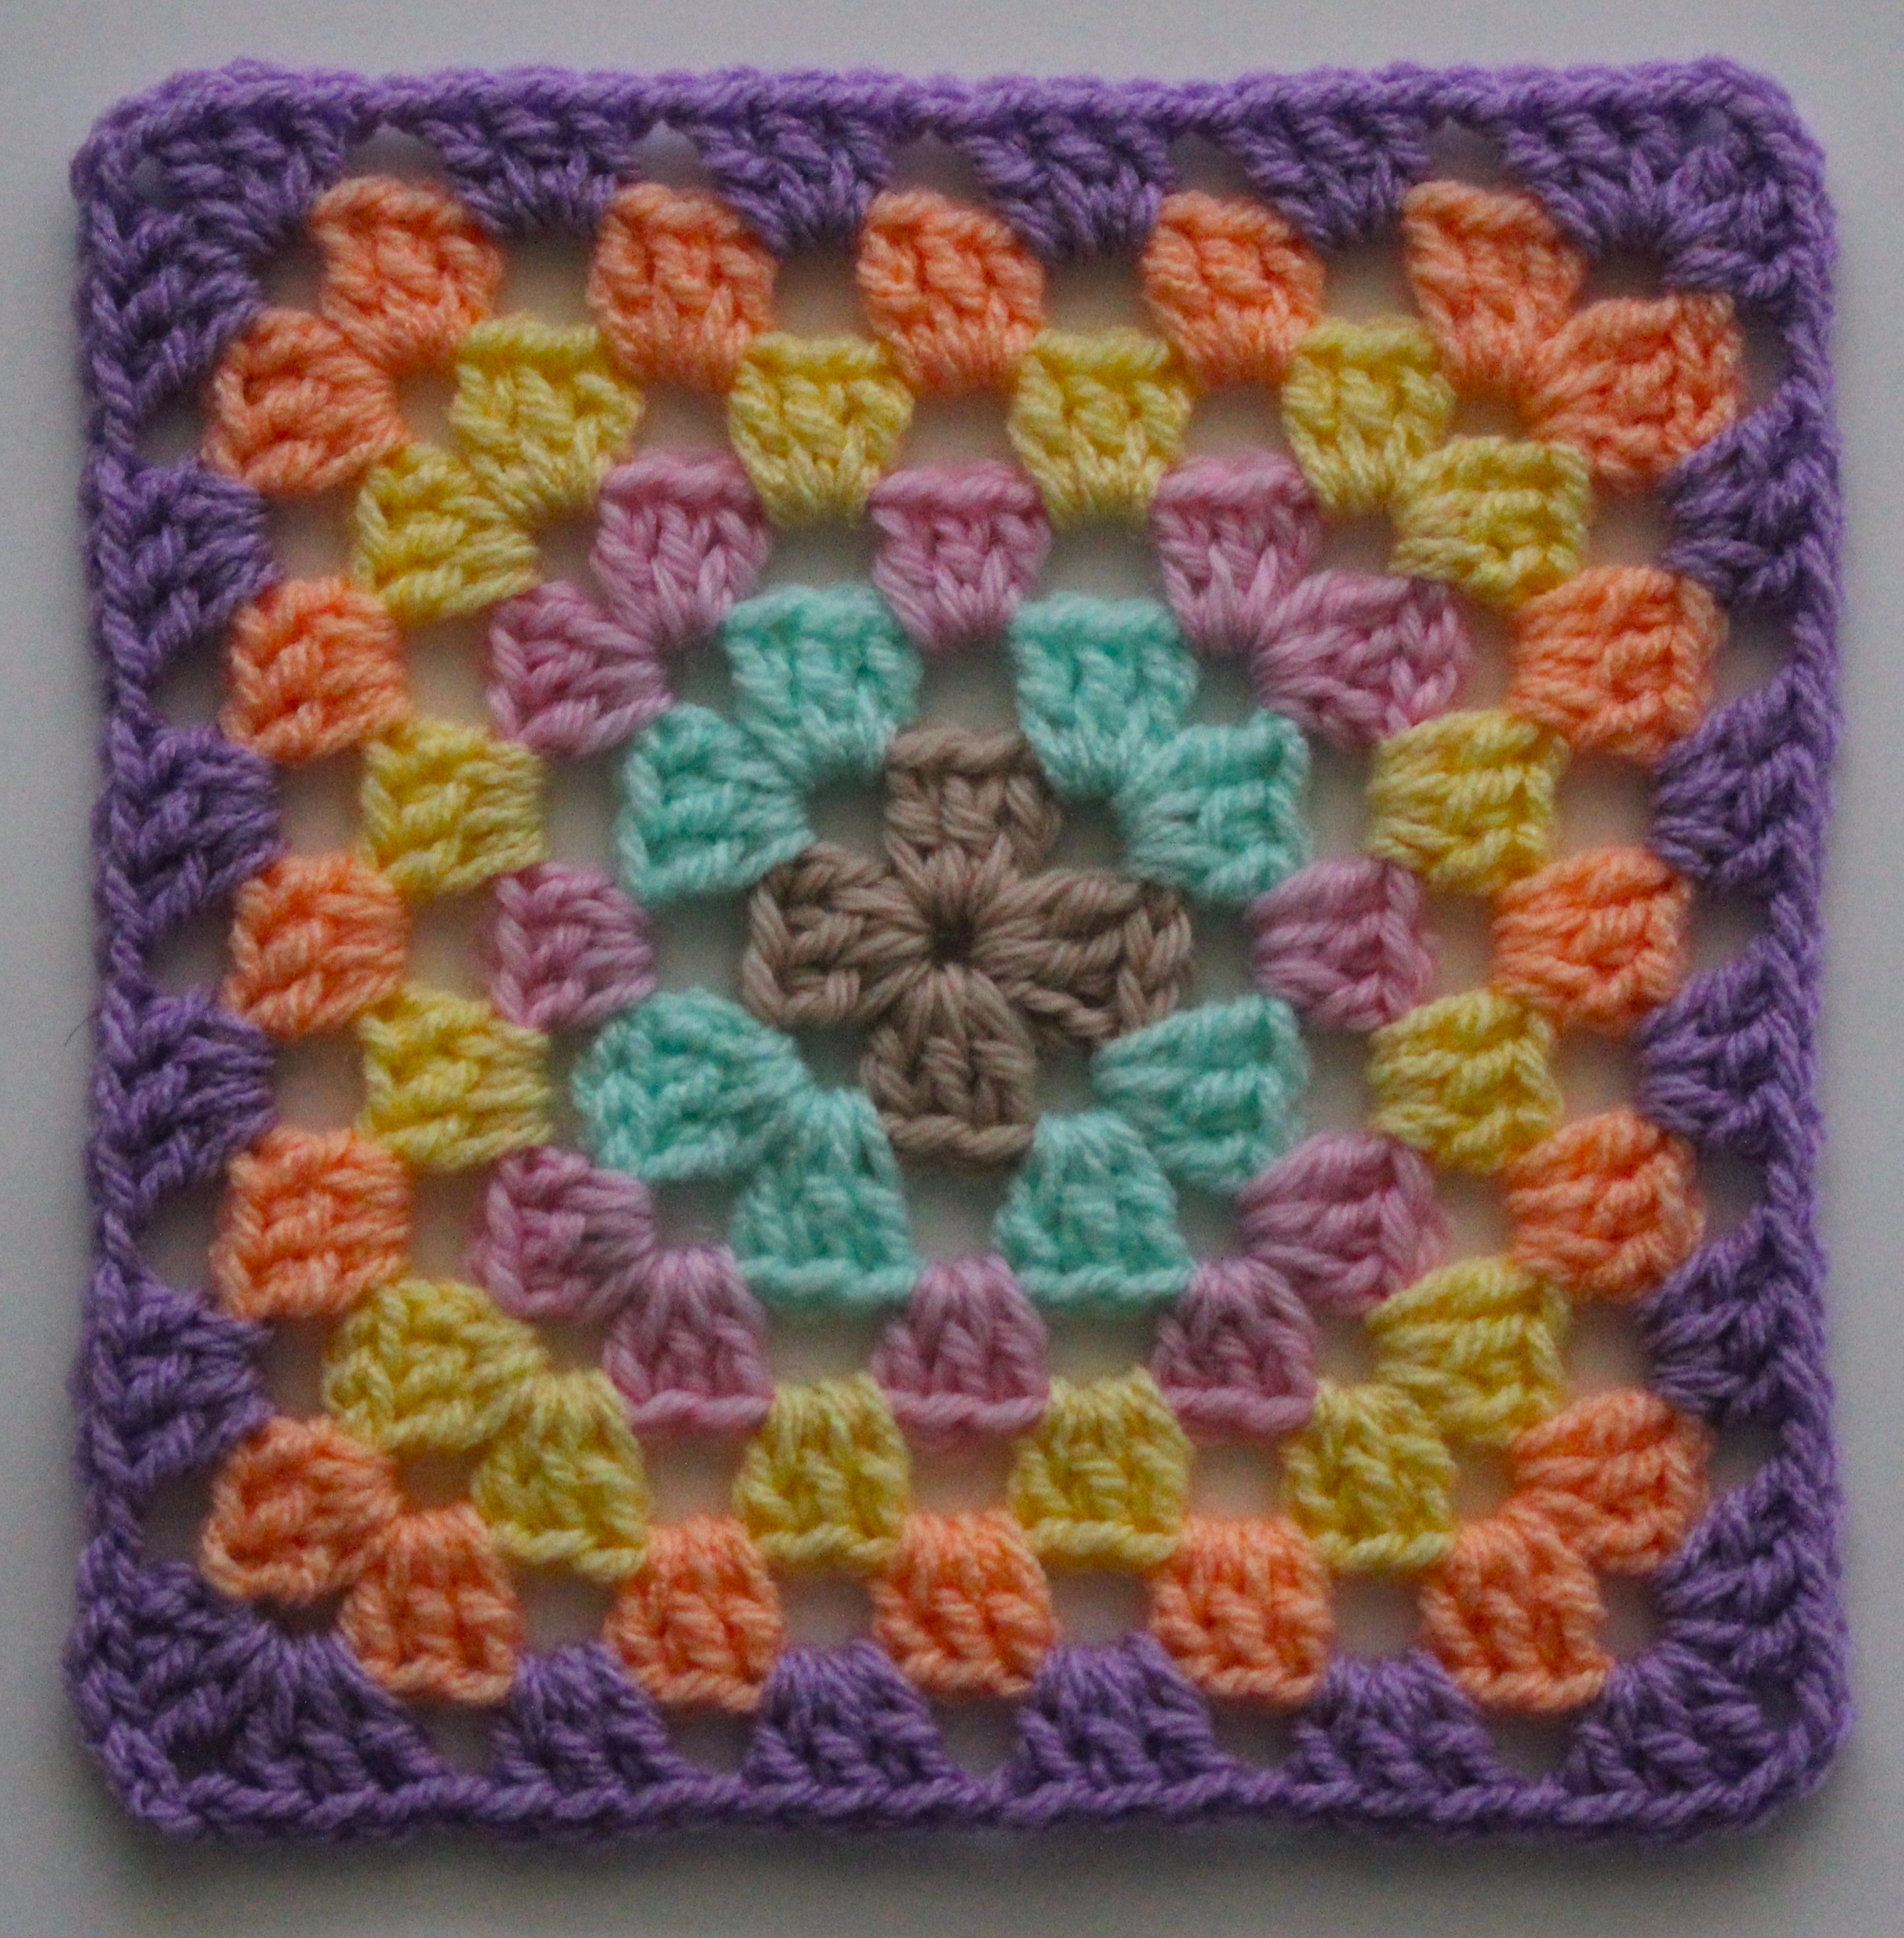 Crochet Easy Granny Square Patterns : FREE Motif Monday: Basic Granny Square Sarah London